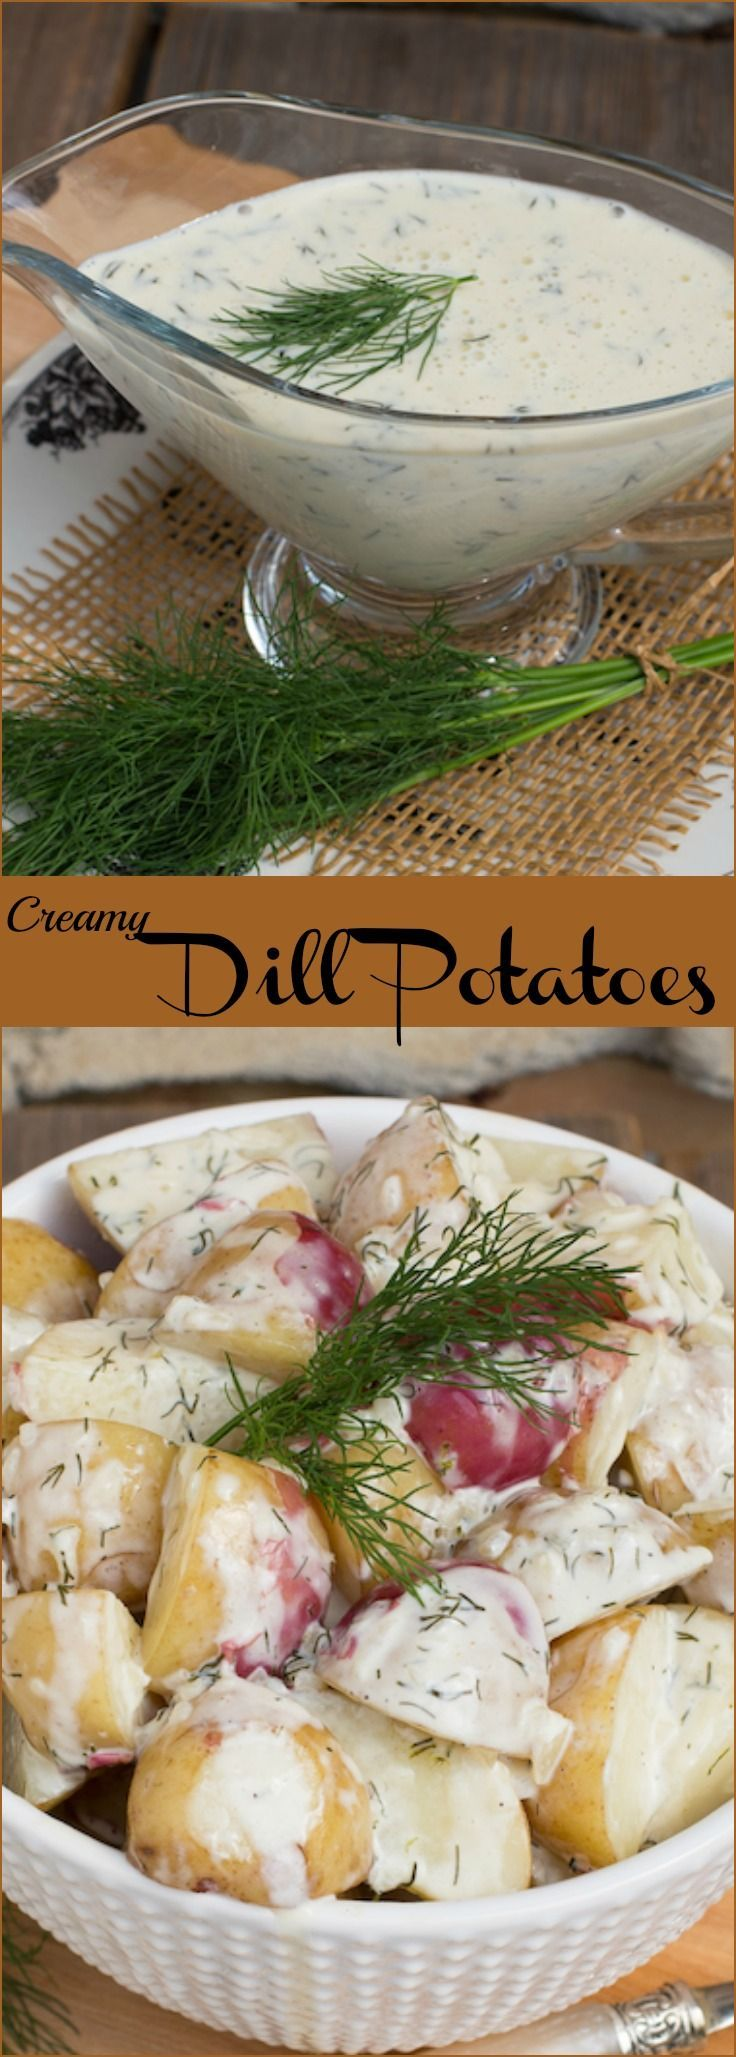 New potatoes with creamy dill sauce. A little bit of this spice makes these extra tasty!